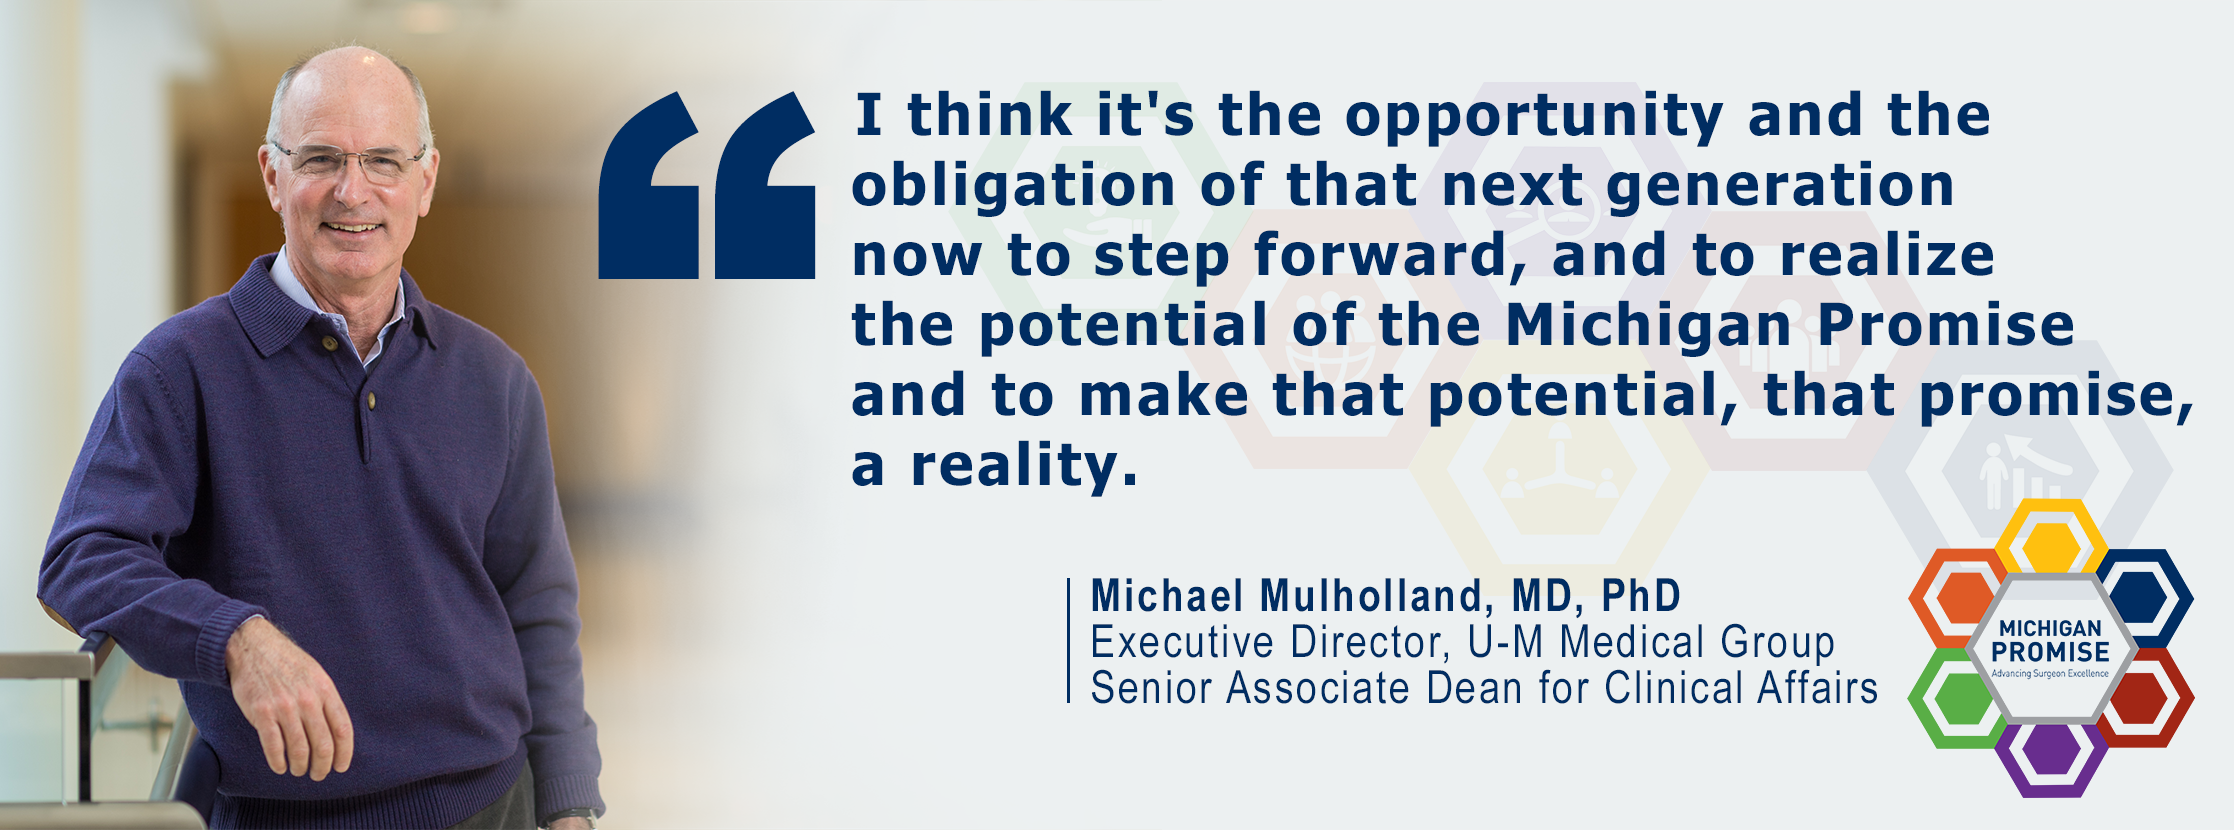 """I think it's the opportunity and the obligation of that next generation now to step forward, and to realize the potential of the Michigan Promise and to make that potential, that promise, a reality."" Michael Mulholland, MD, PhD"